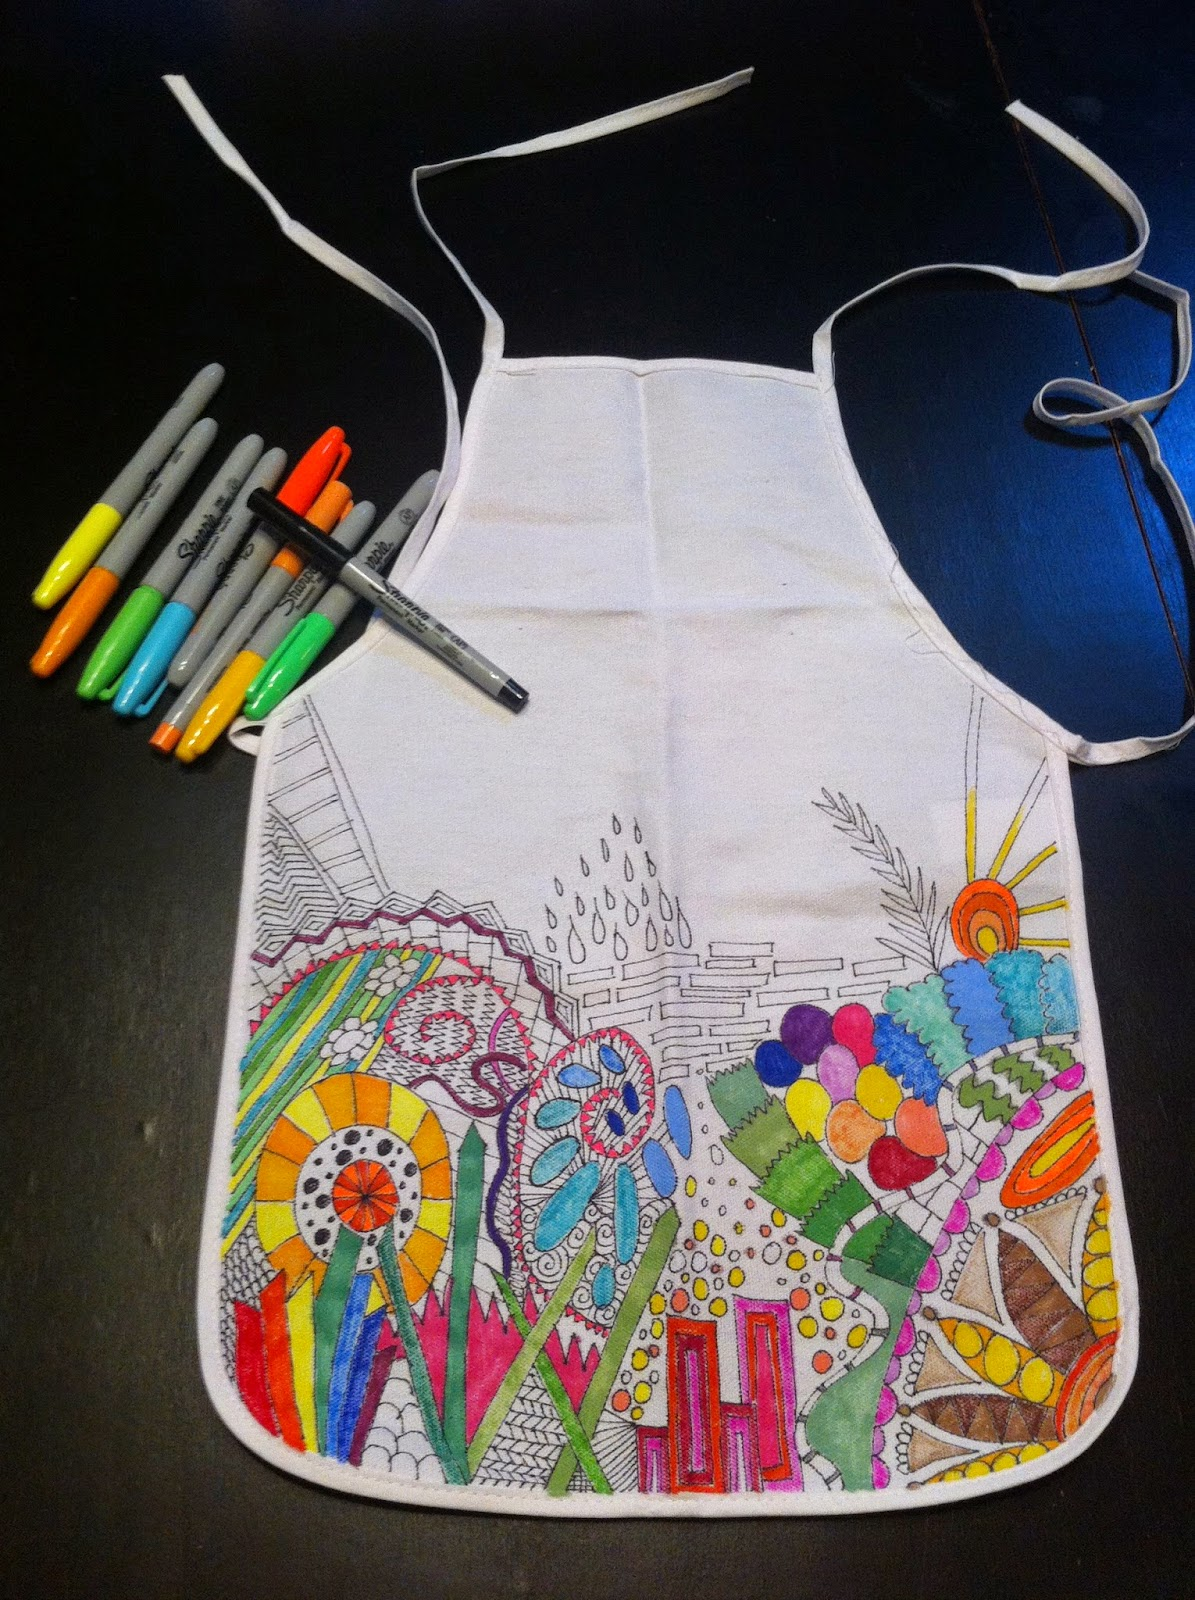 Product - Kids Apron Animal Friend Chicken Sheep and Horse with Patch Motif Zoo Joyful Cartoon Print, Unisex Kitchen Bib Apron with Adjustable Neck for Cooking Baking Gardening, Red Orange Yellow, by .